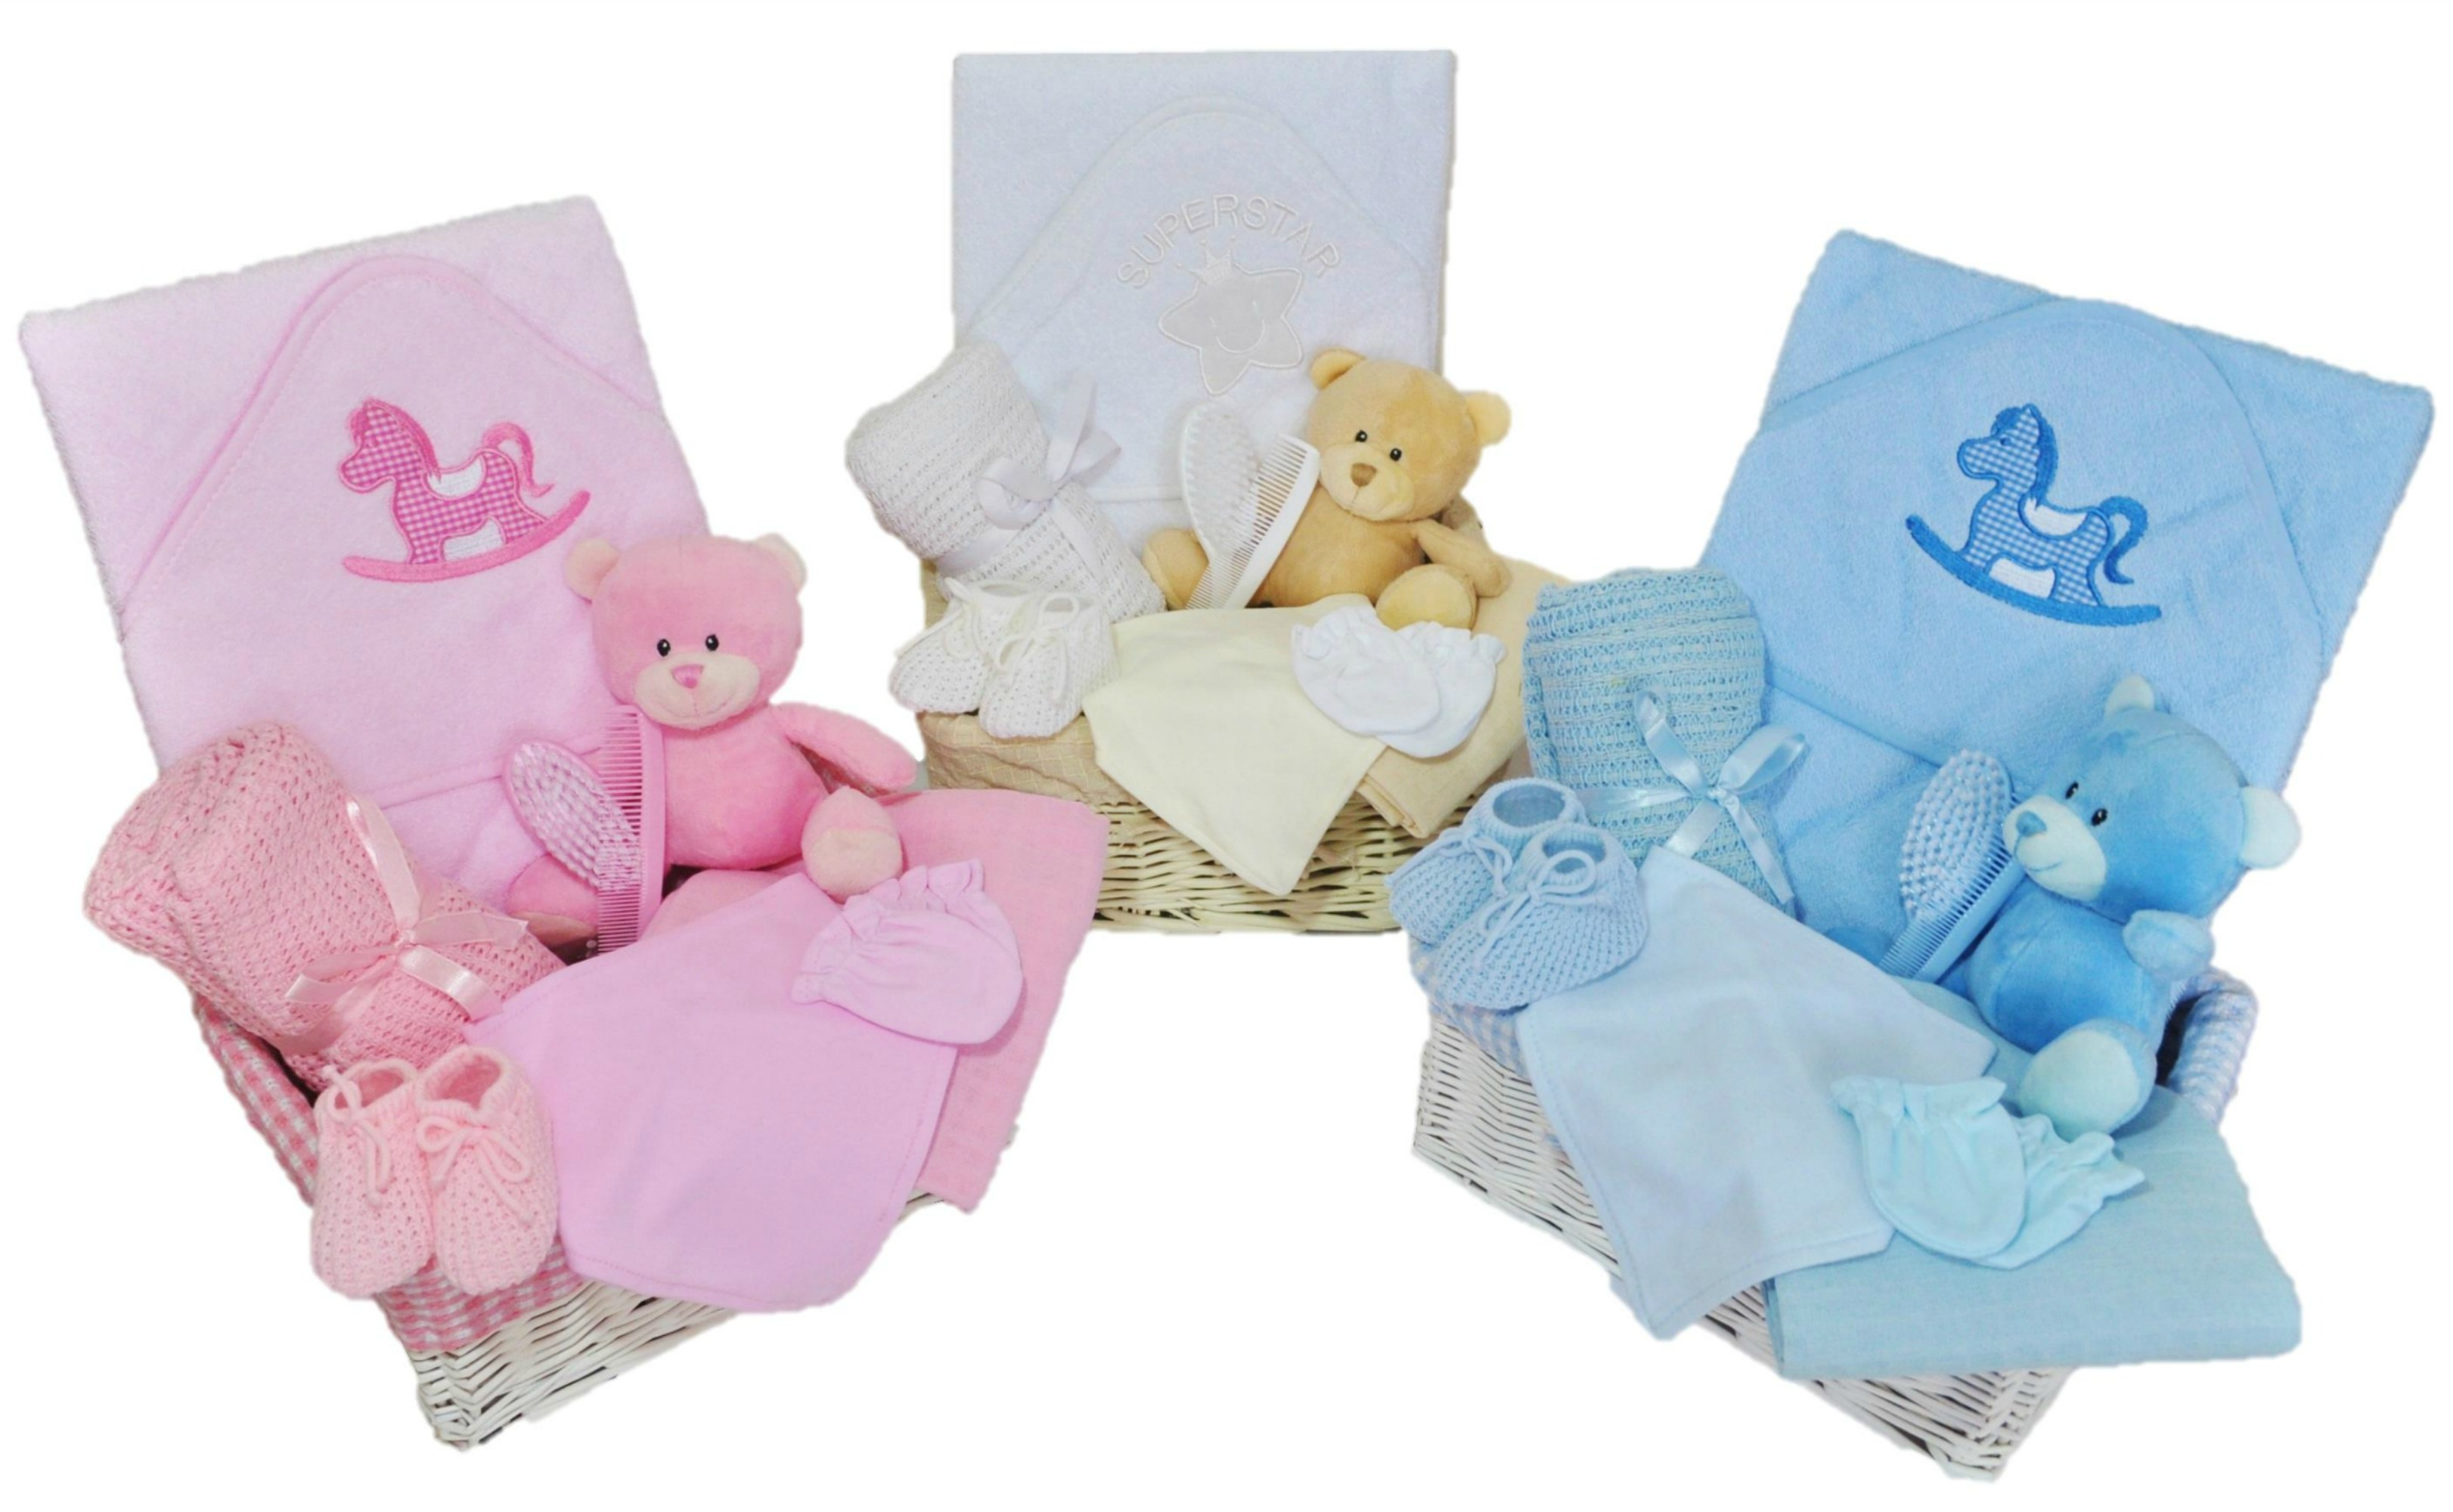 Empty Baby Gift Boxes Uk : Baby shower gift ideas for uni k wallpapers